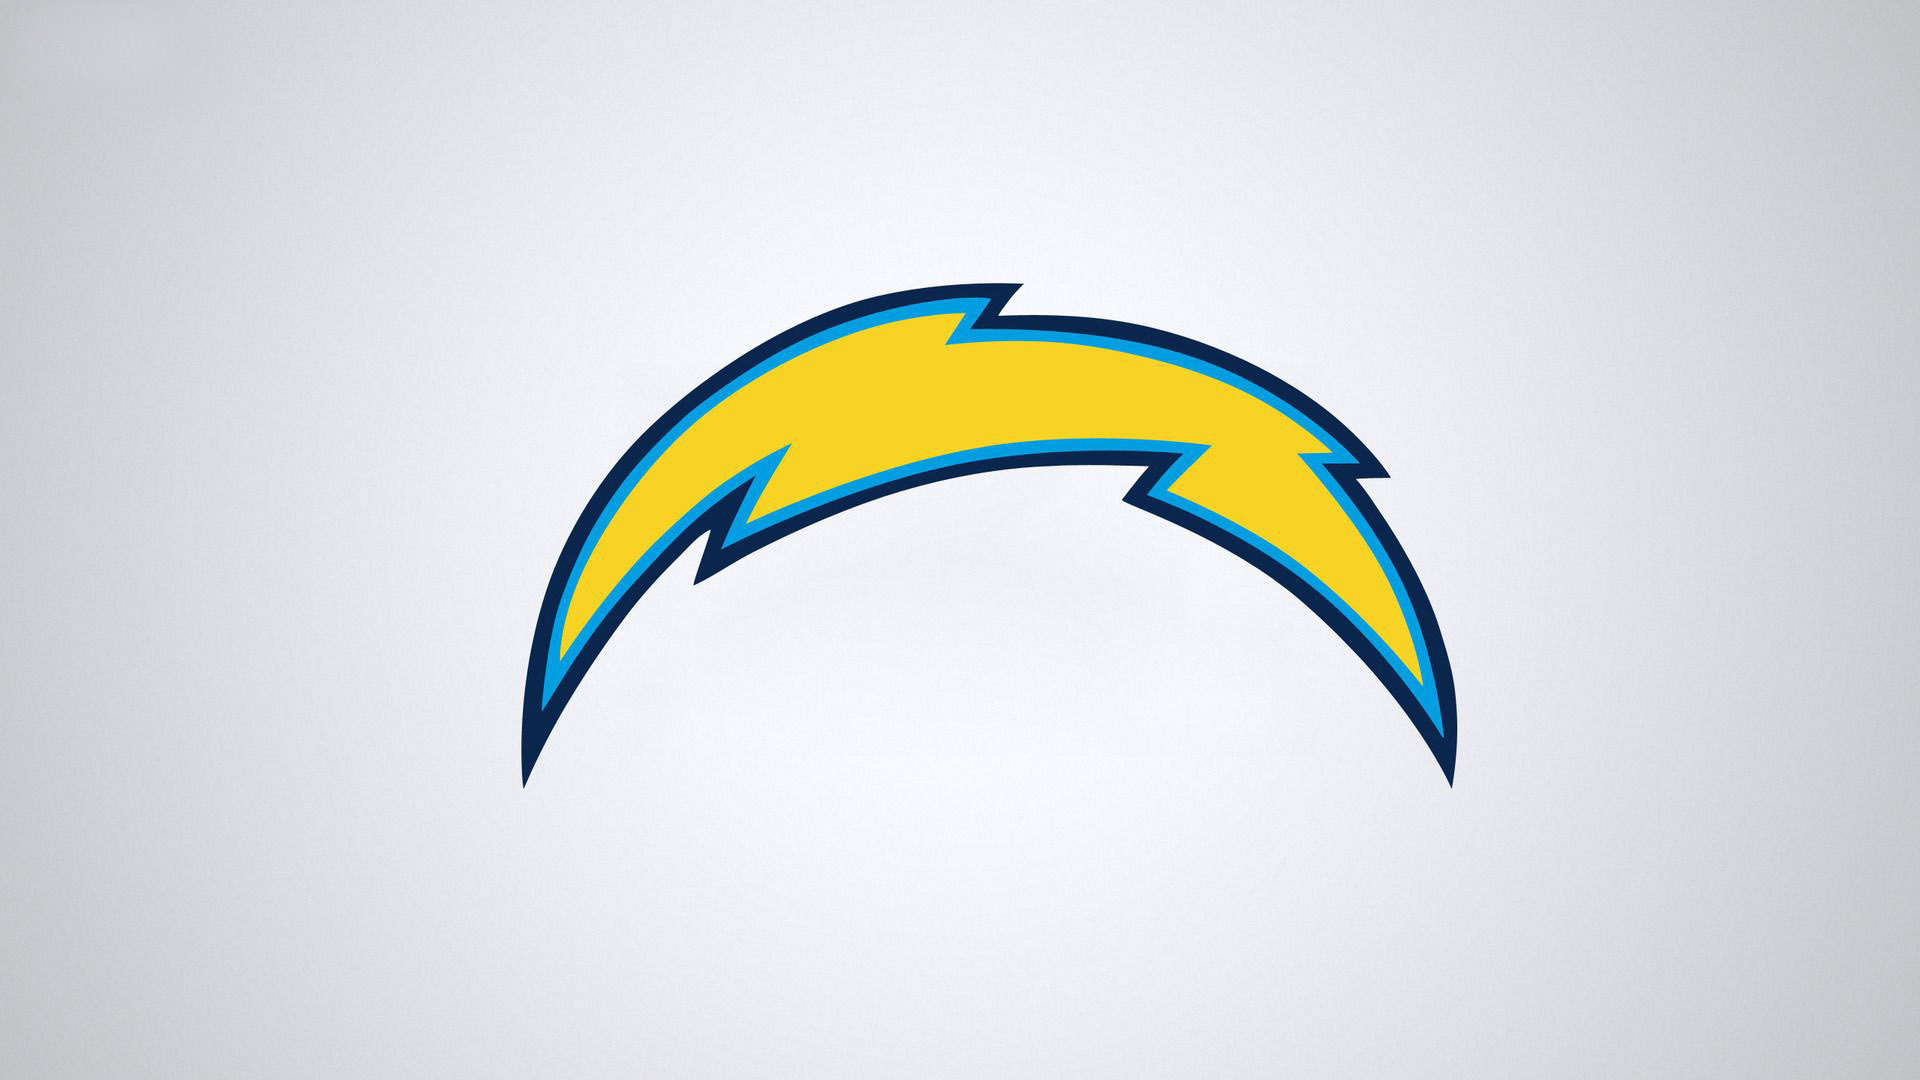 San Diego Chargers wallpaper 18516 1920x1080